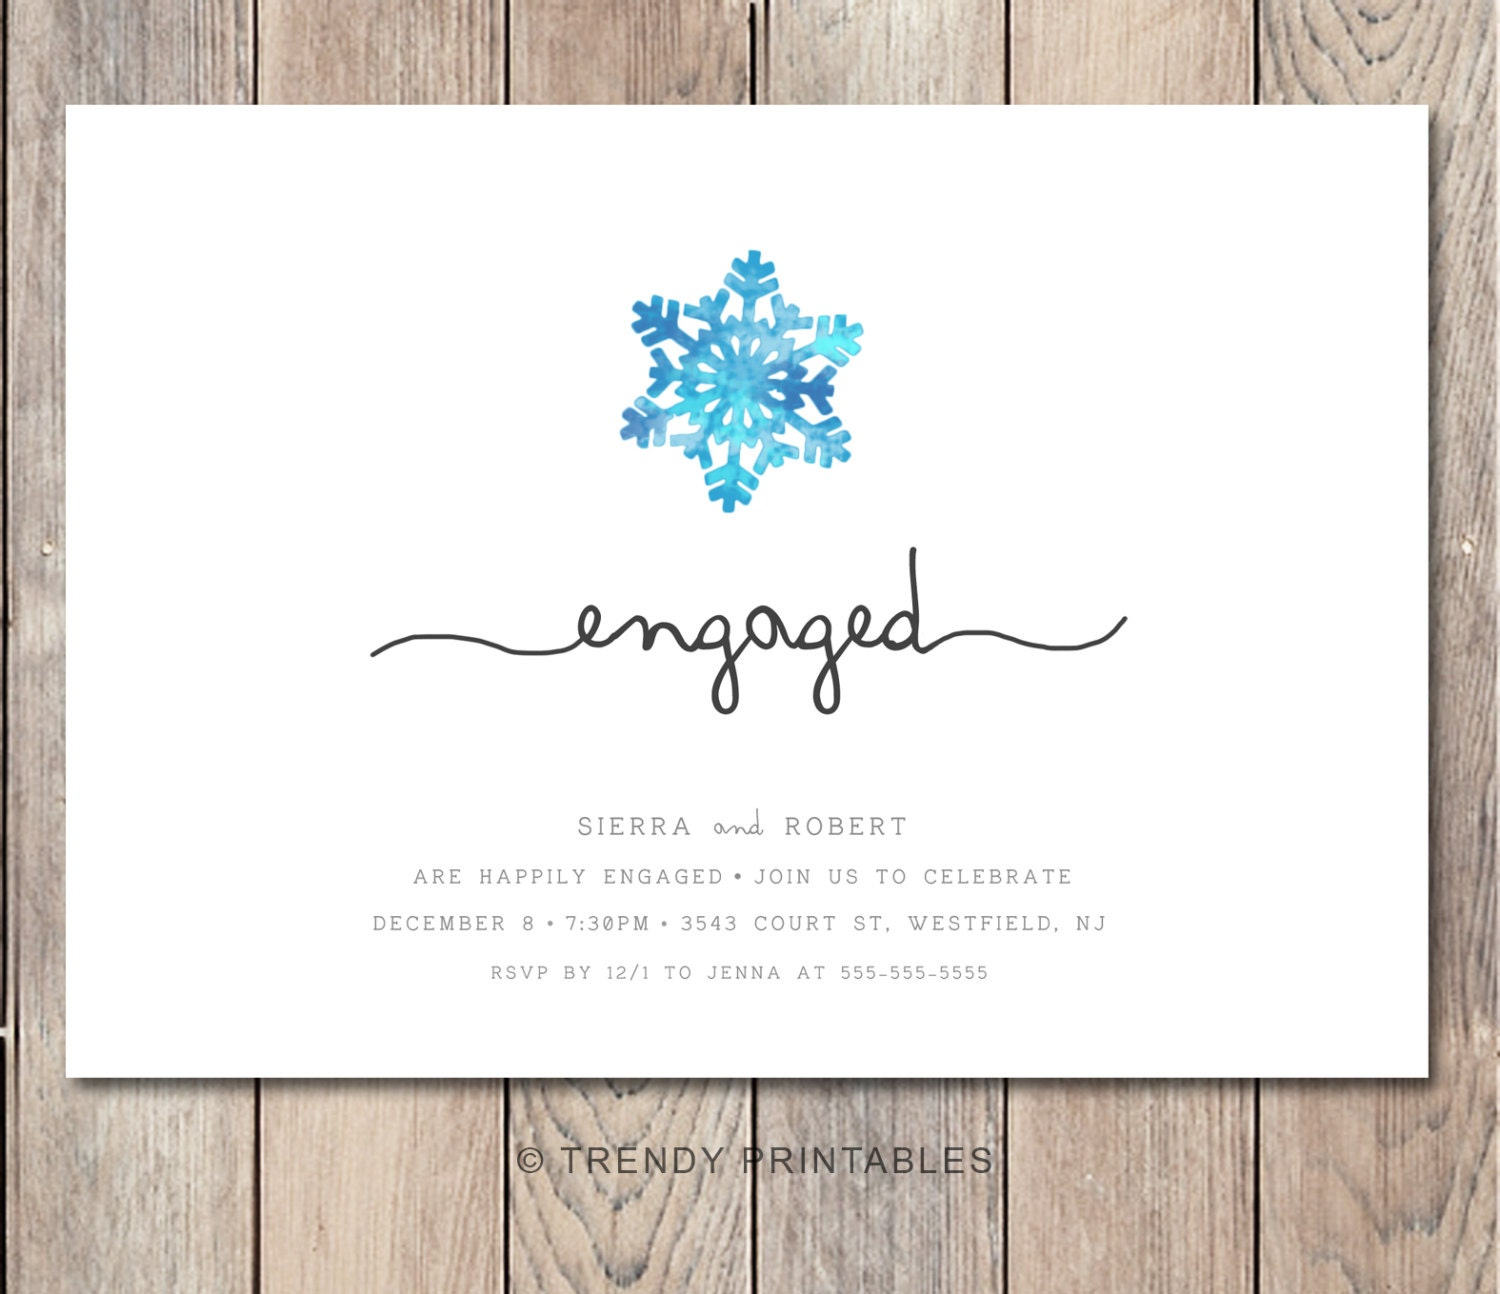 Engagement invitations downloads PEAKTRAPSTK